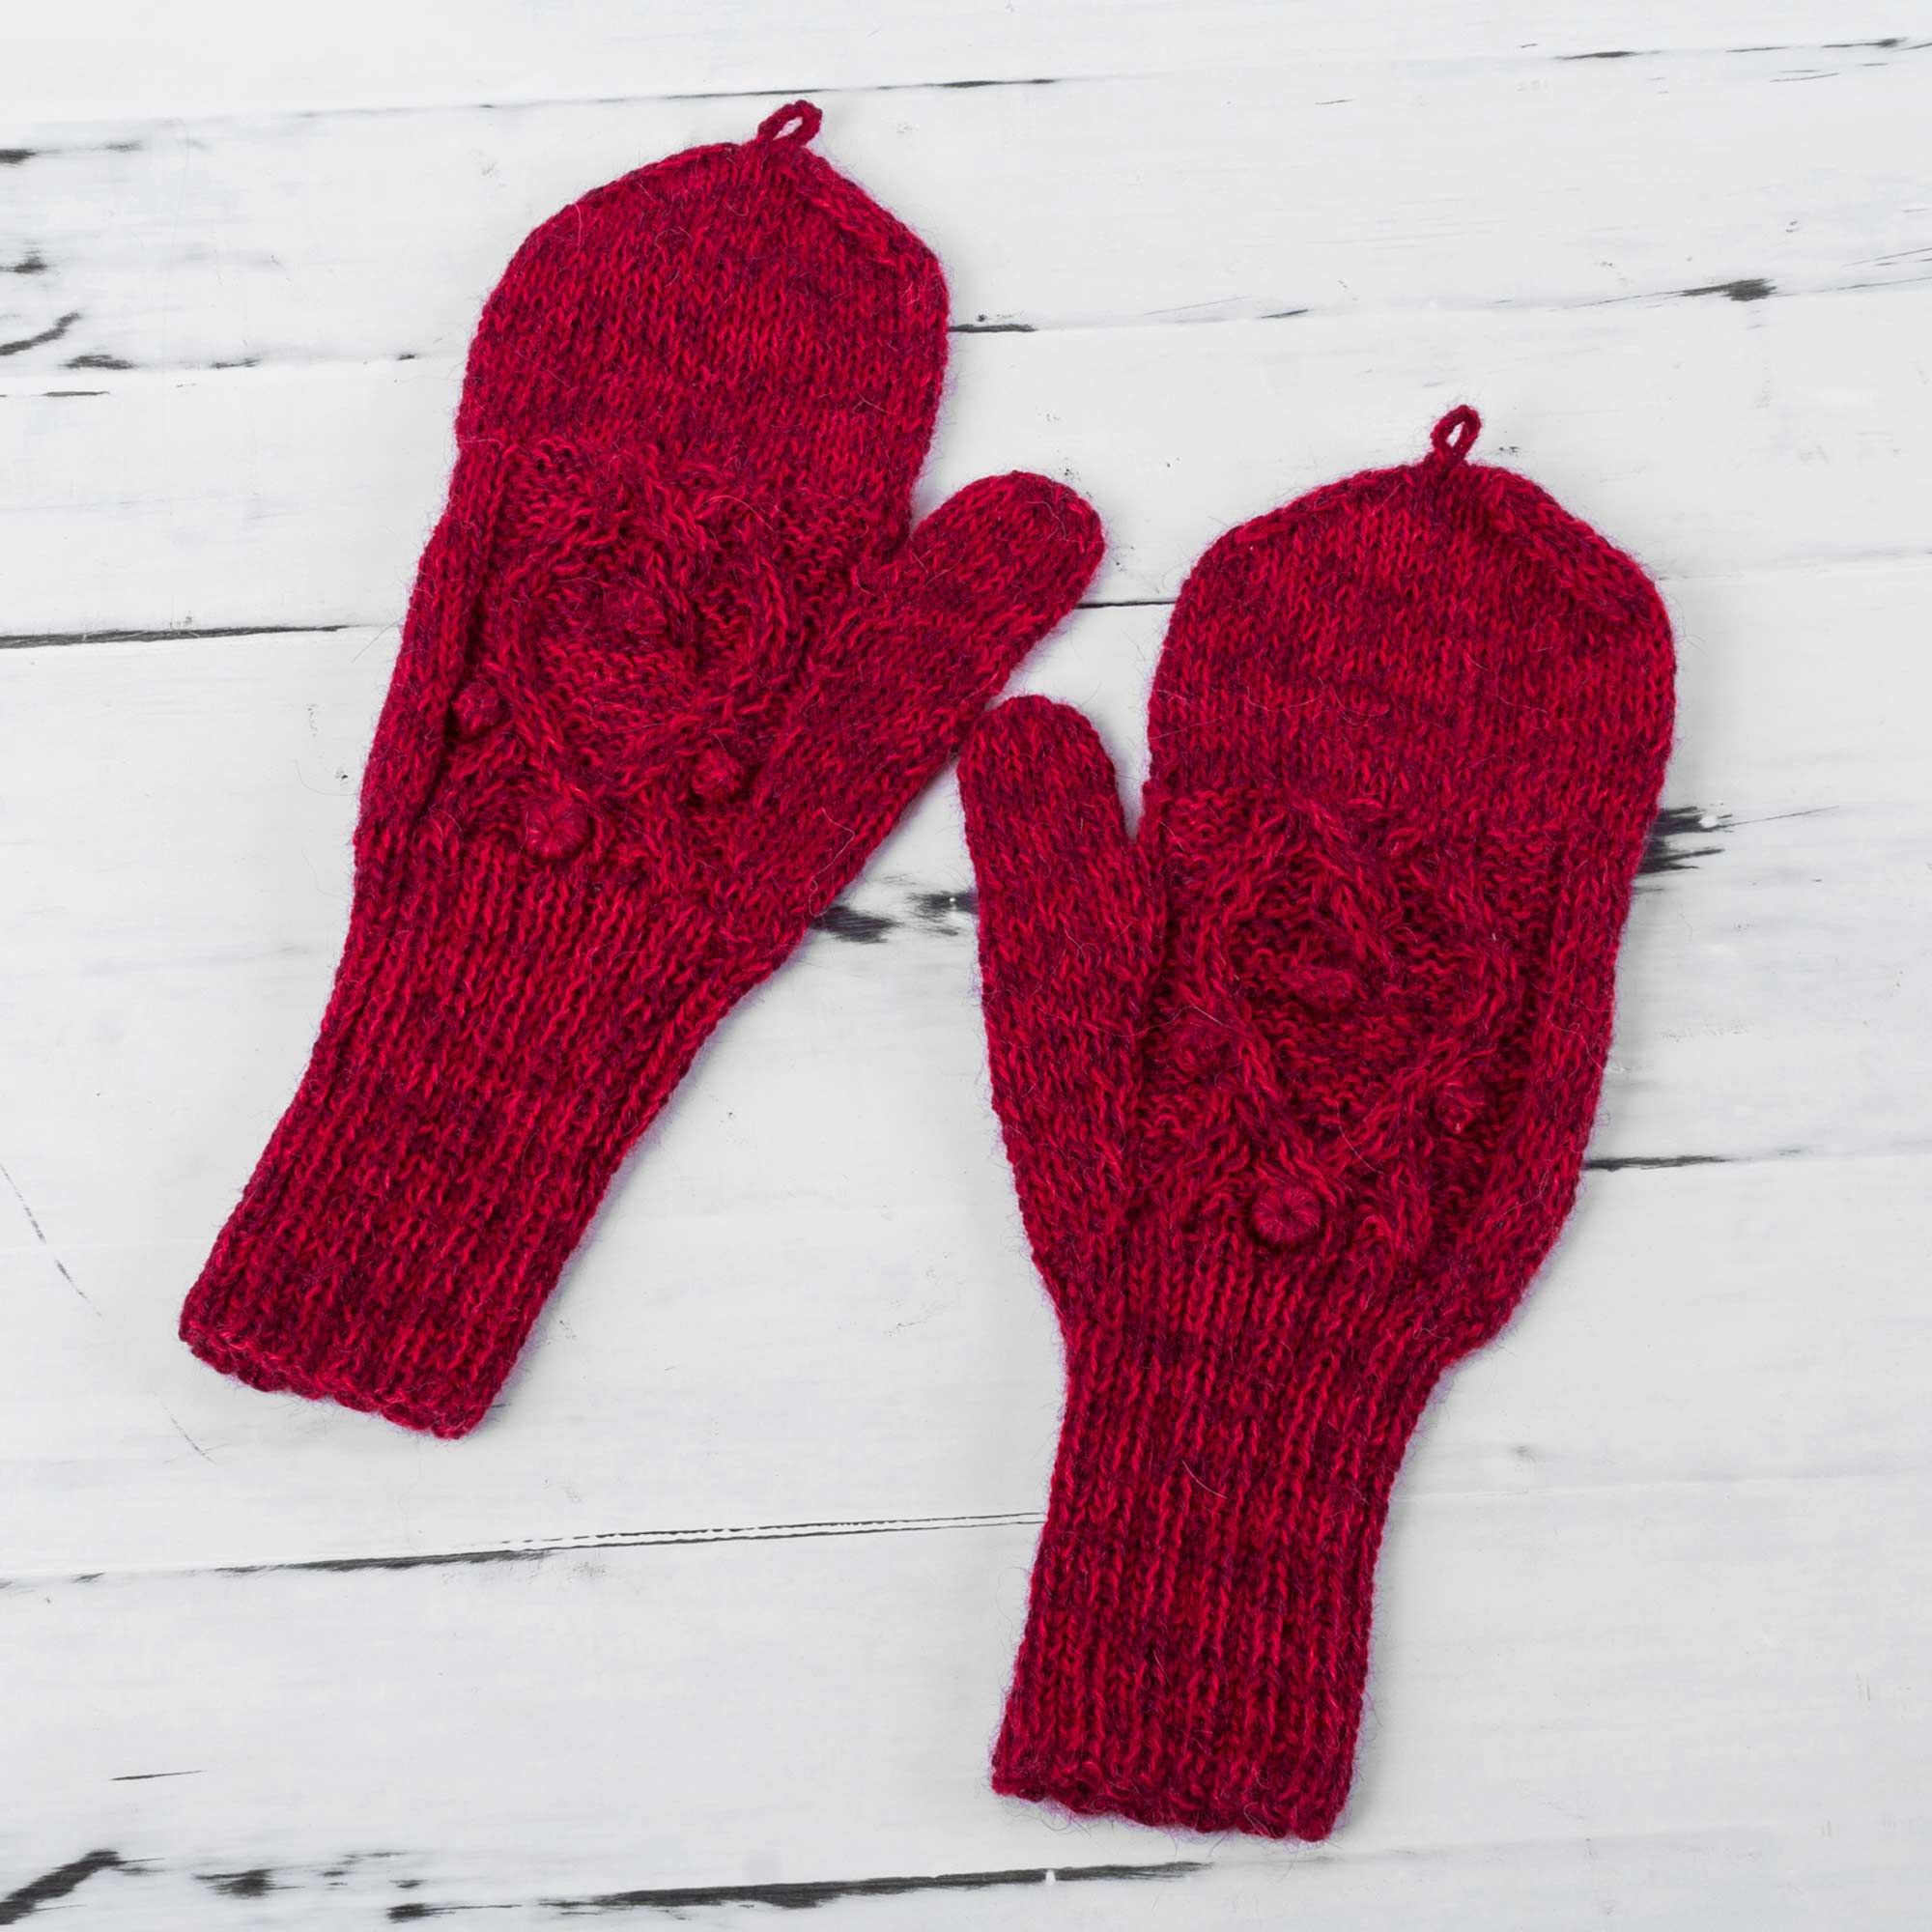 Cherry Braids Hand Knitted Andean 100% Alpaca Red Fingerless Mittens Look Cool and Stay Warm Stylish & Practical Winter Accessories NOVICA Fair trade